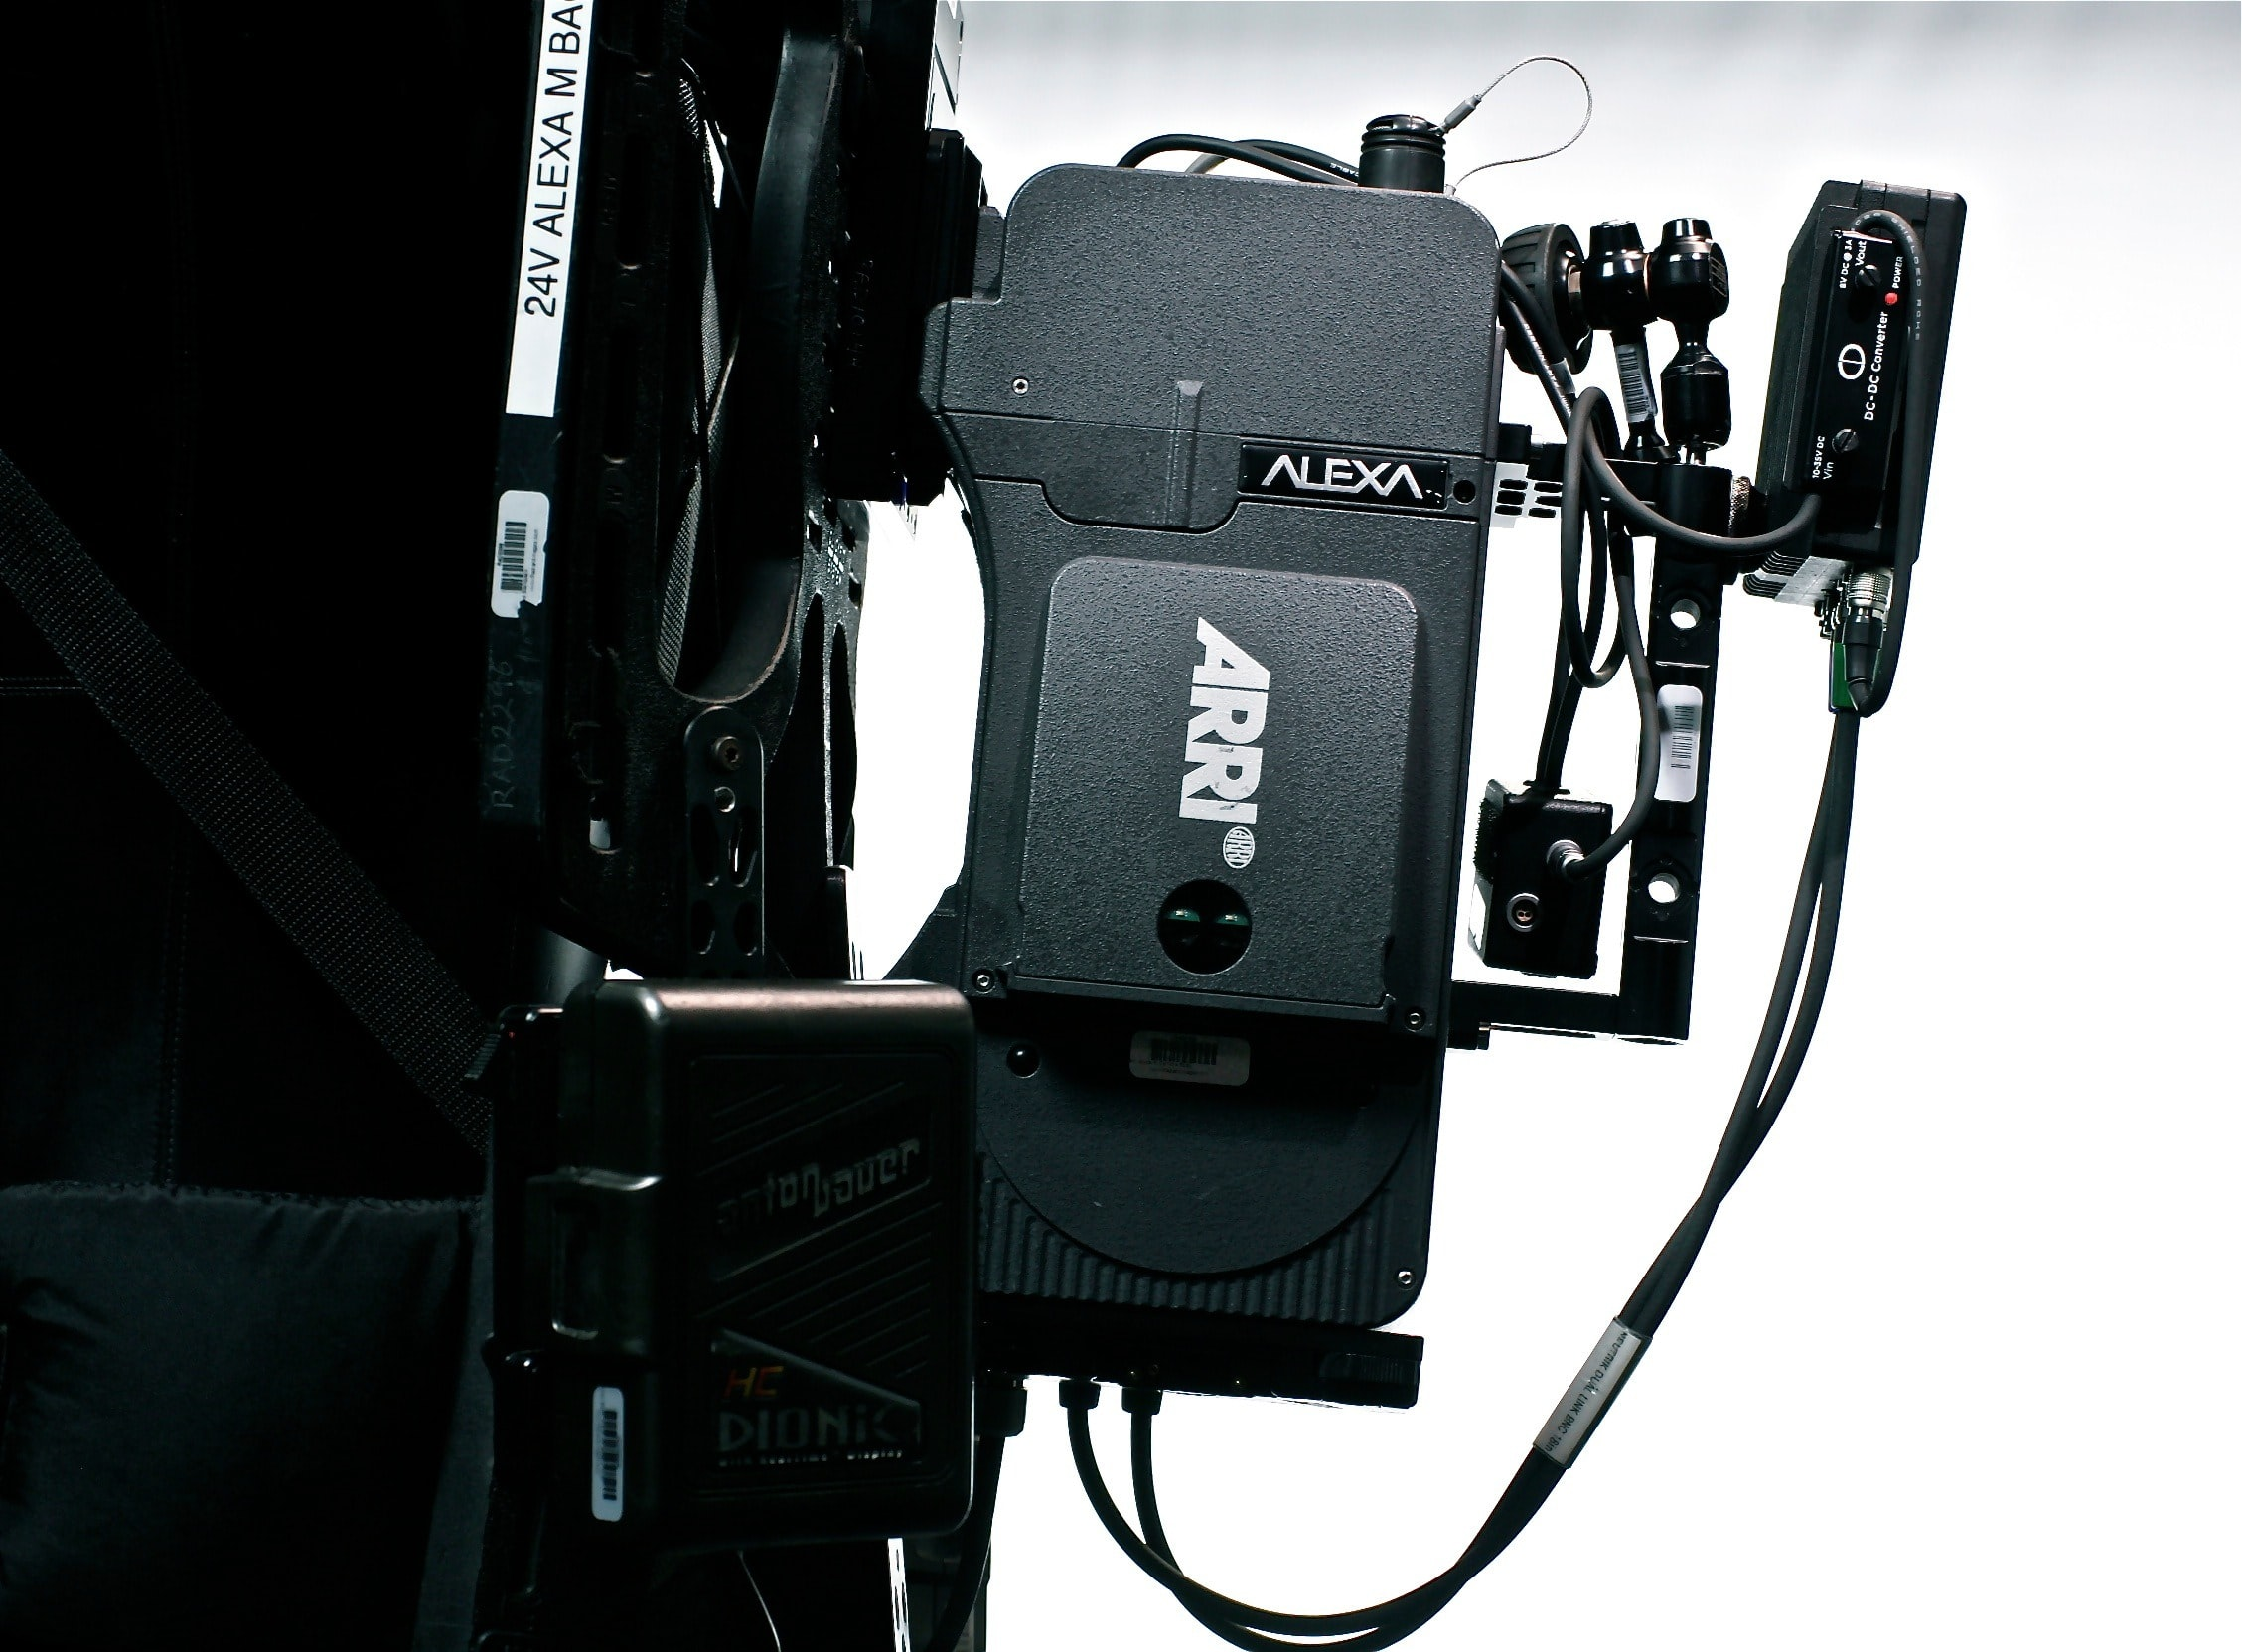 Black ARRI Alexa movie camera recording equipment technology